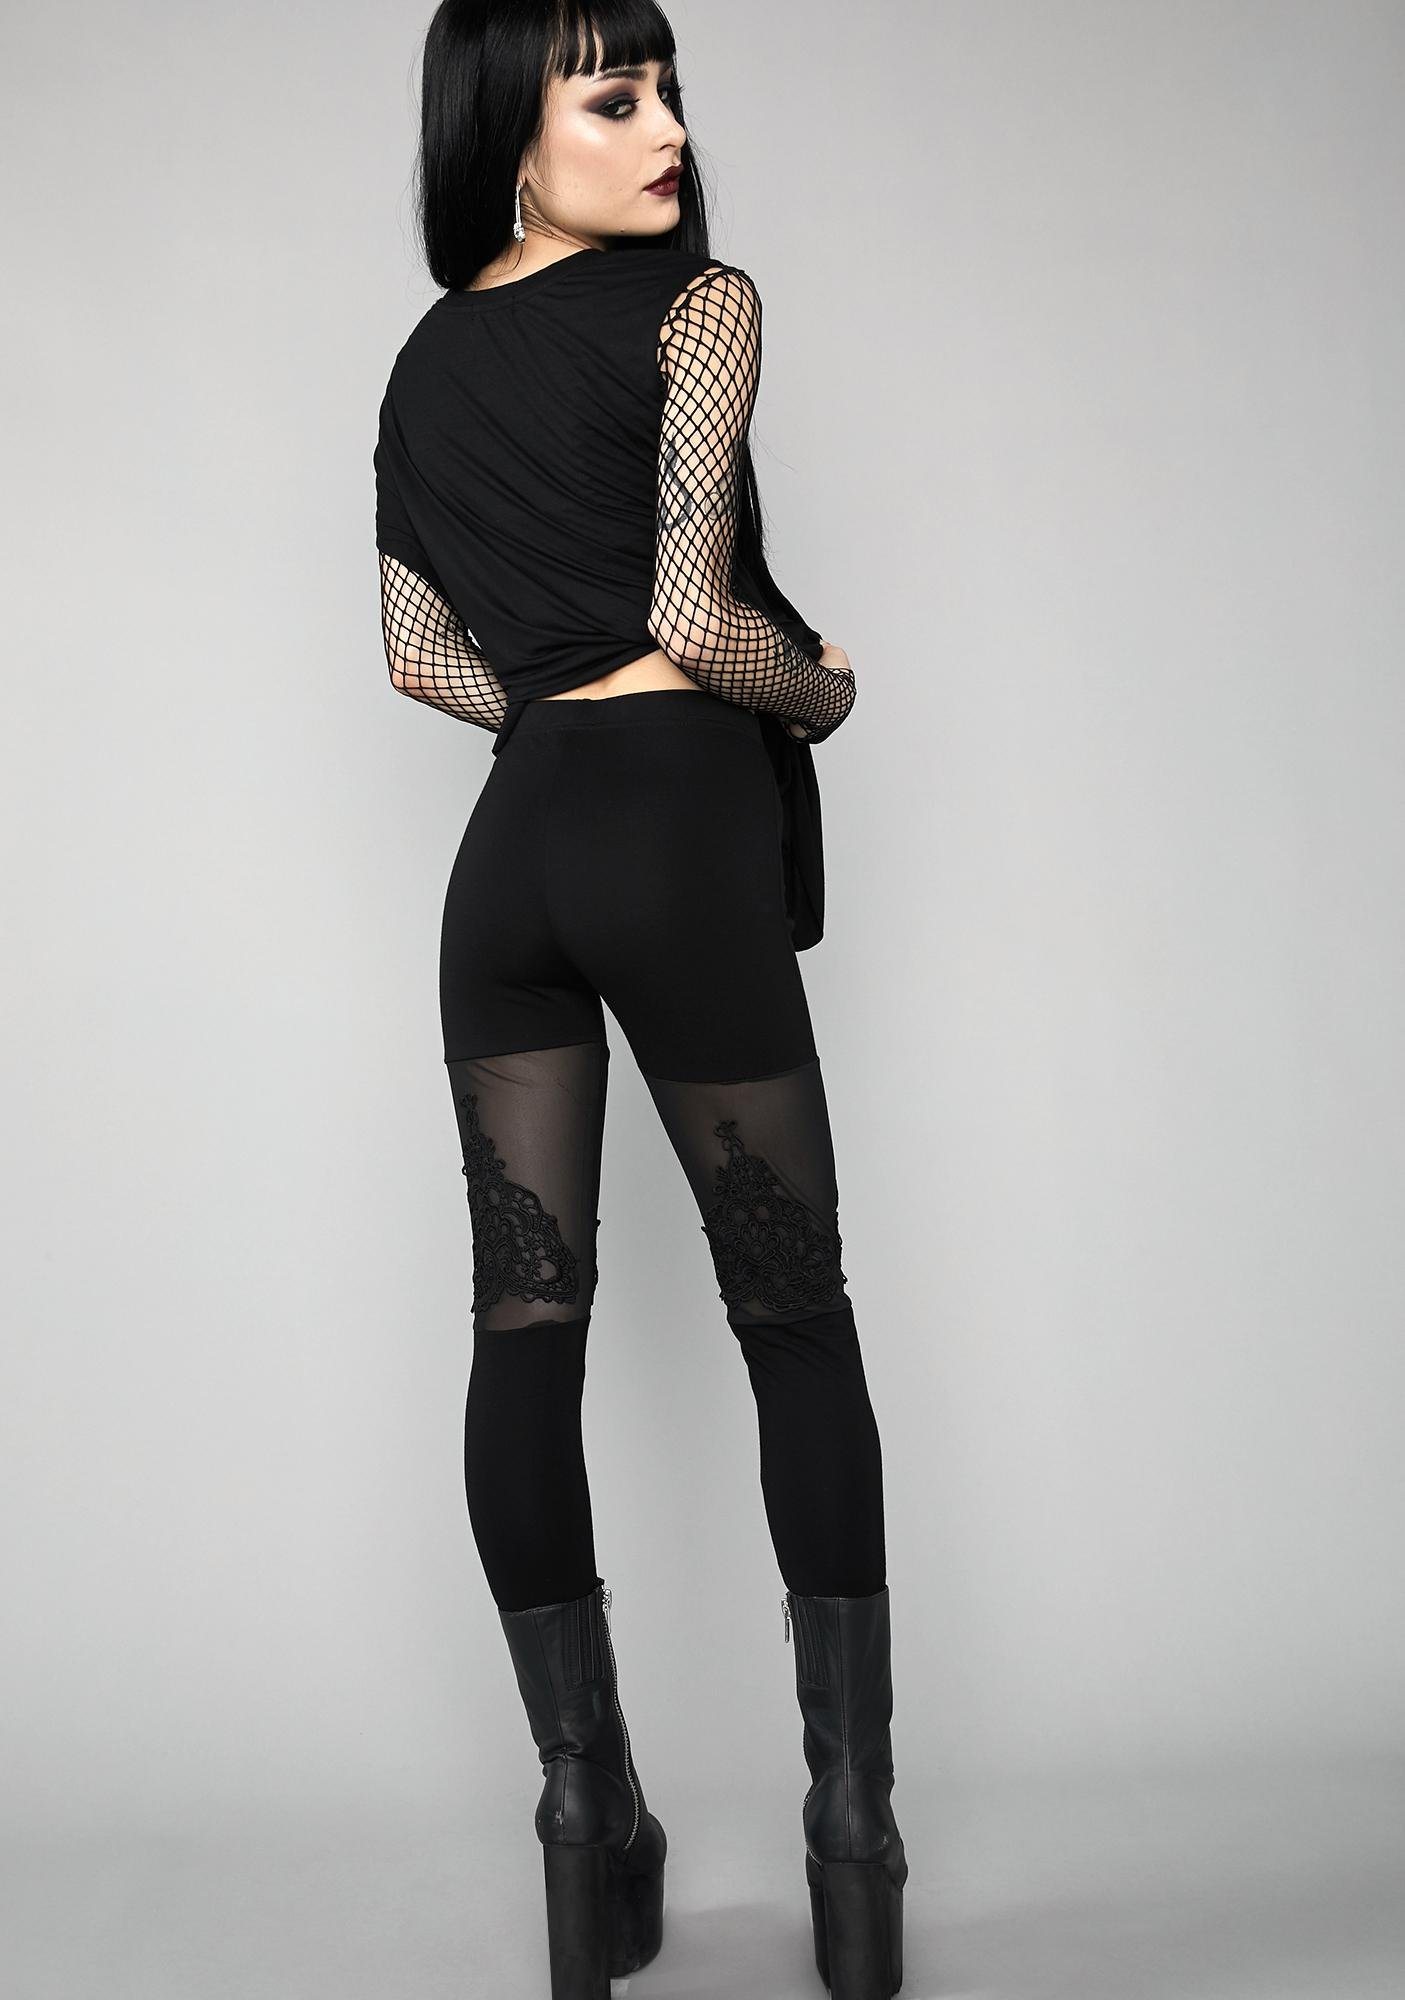 Widow Silent Vigil Mesh Leggings